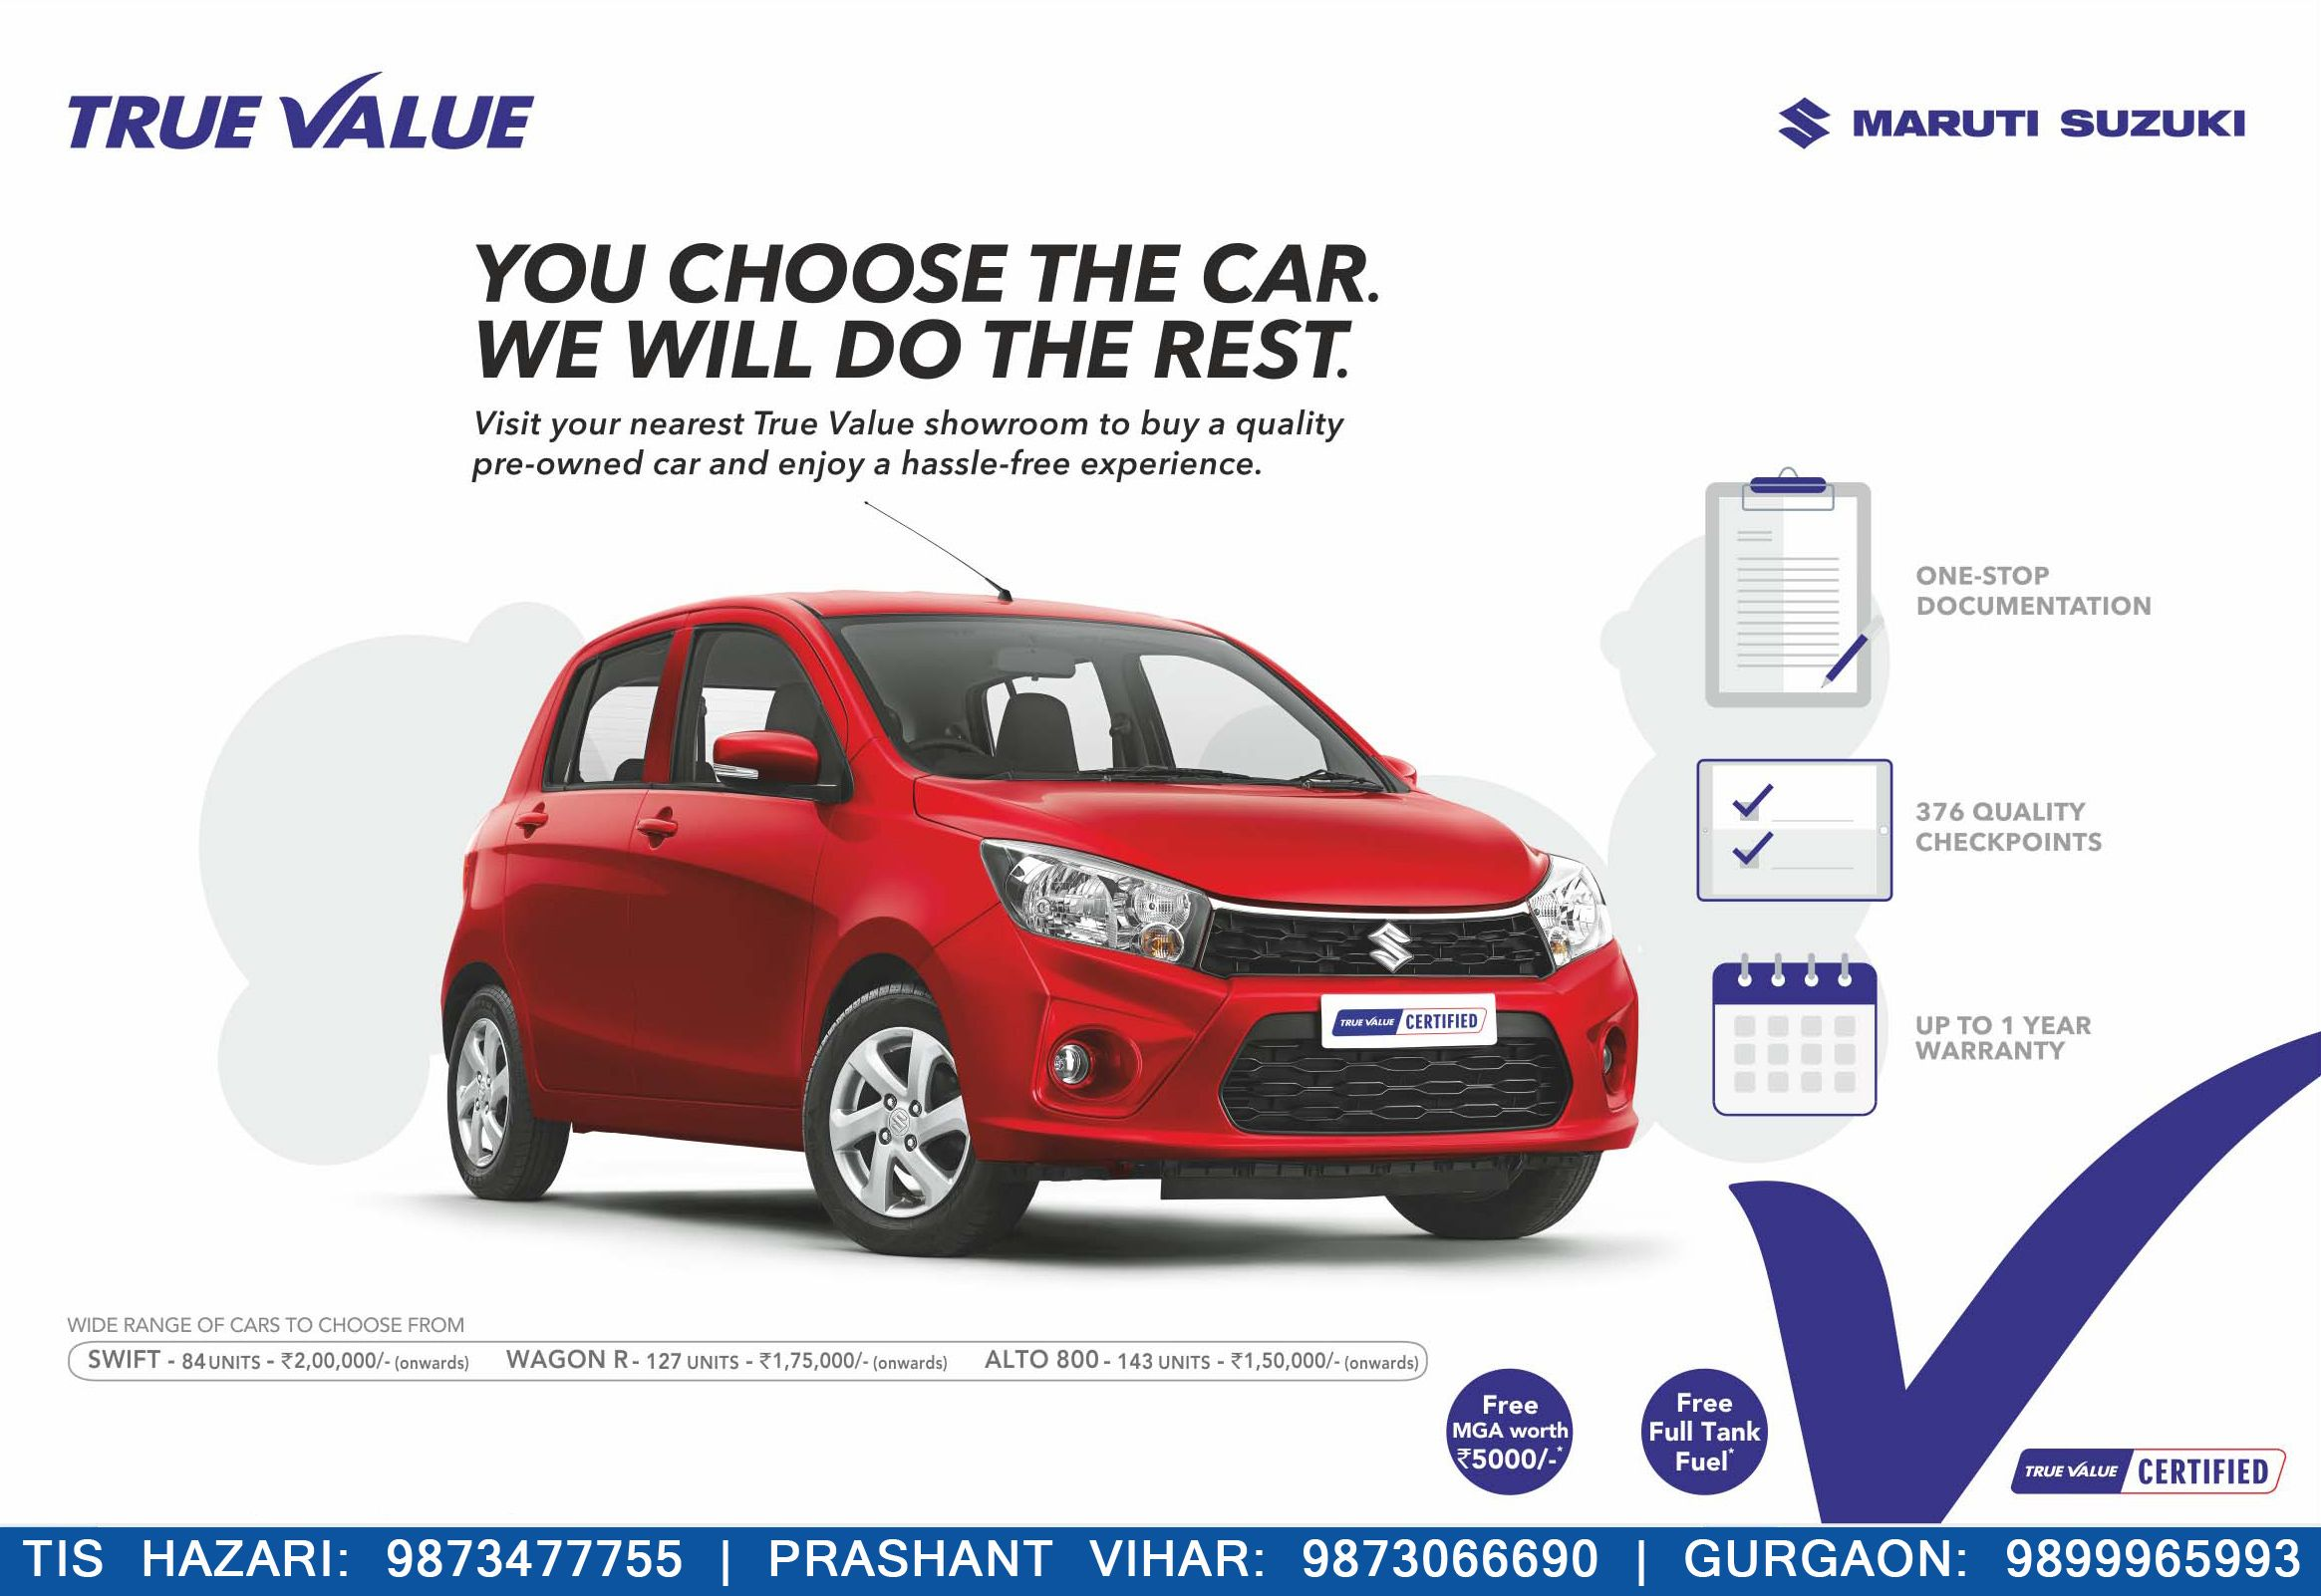 Maruti True Value – You choose the car We will do the rest Tis